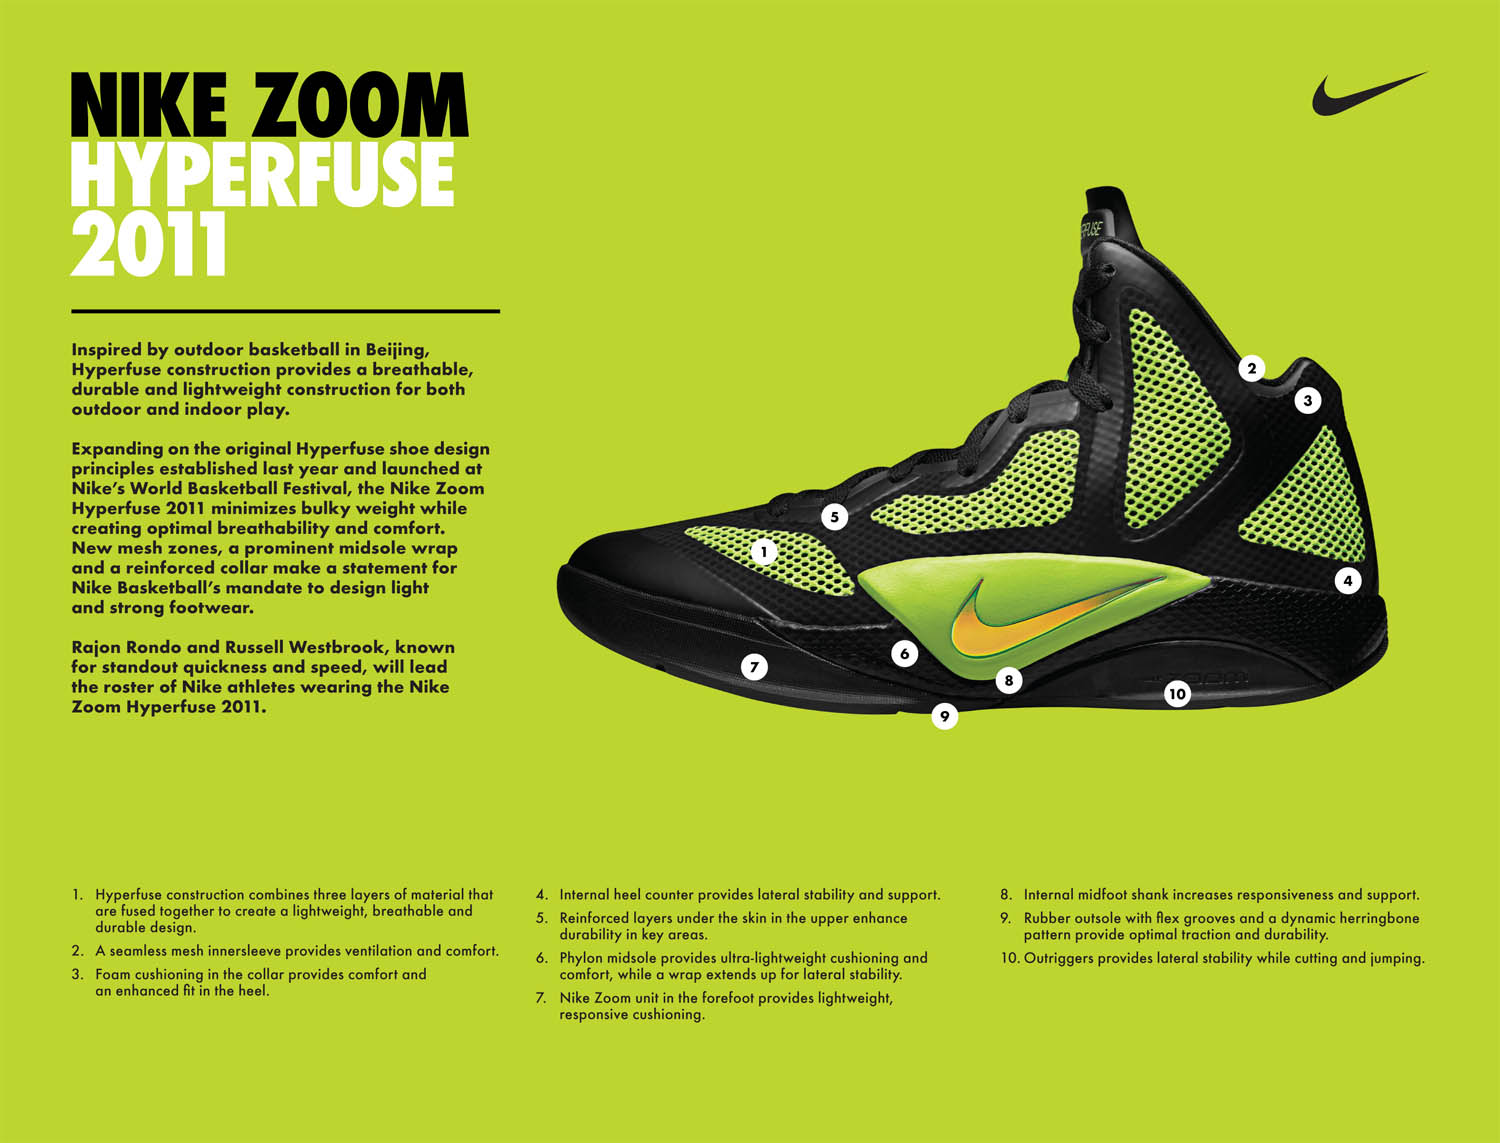 6dfa1fdc0f0 Nike Officially Introduces the Zoom Hyperfuse 2011